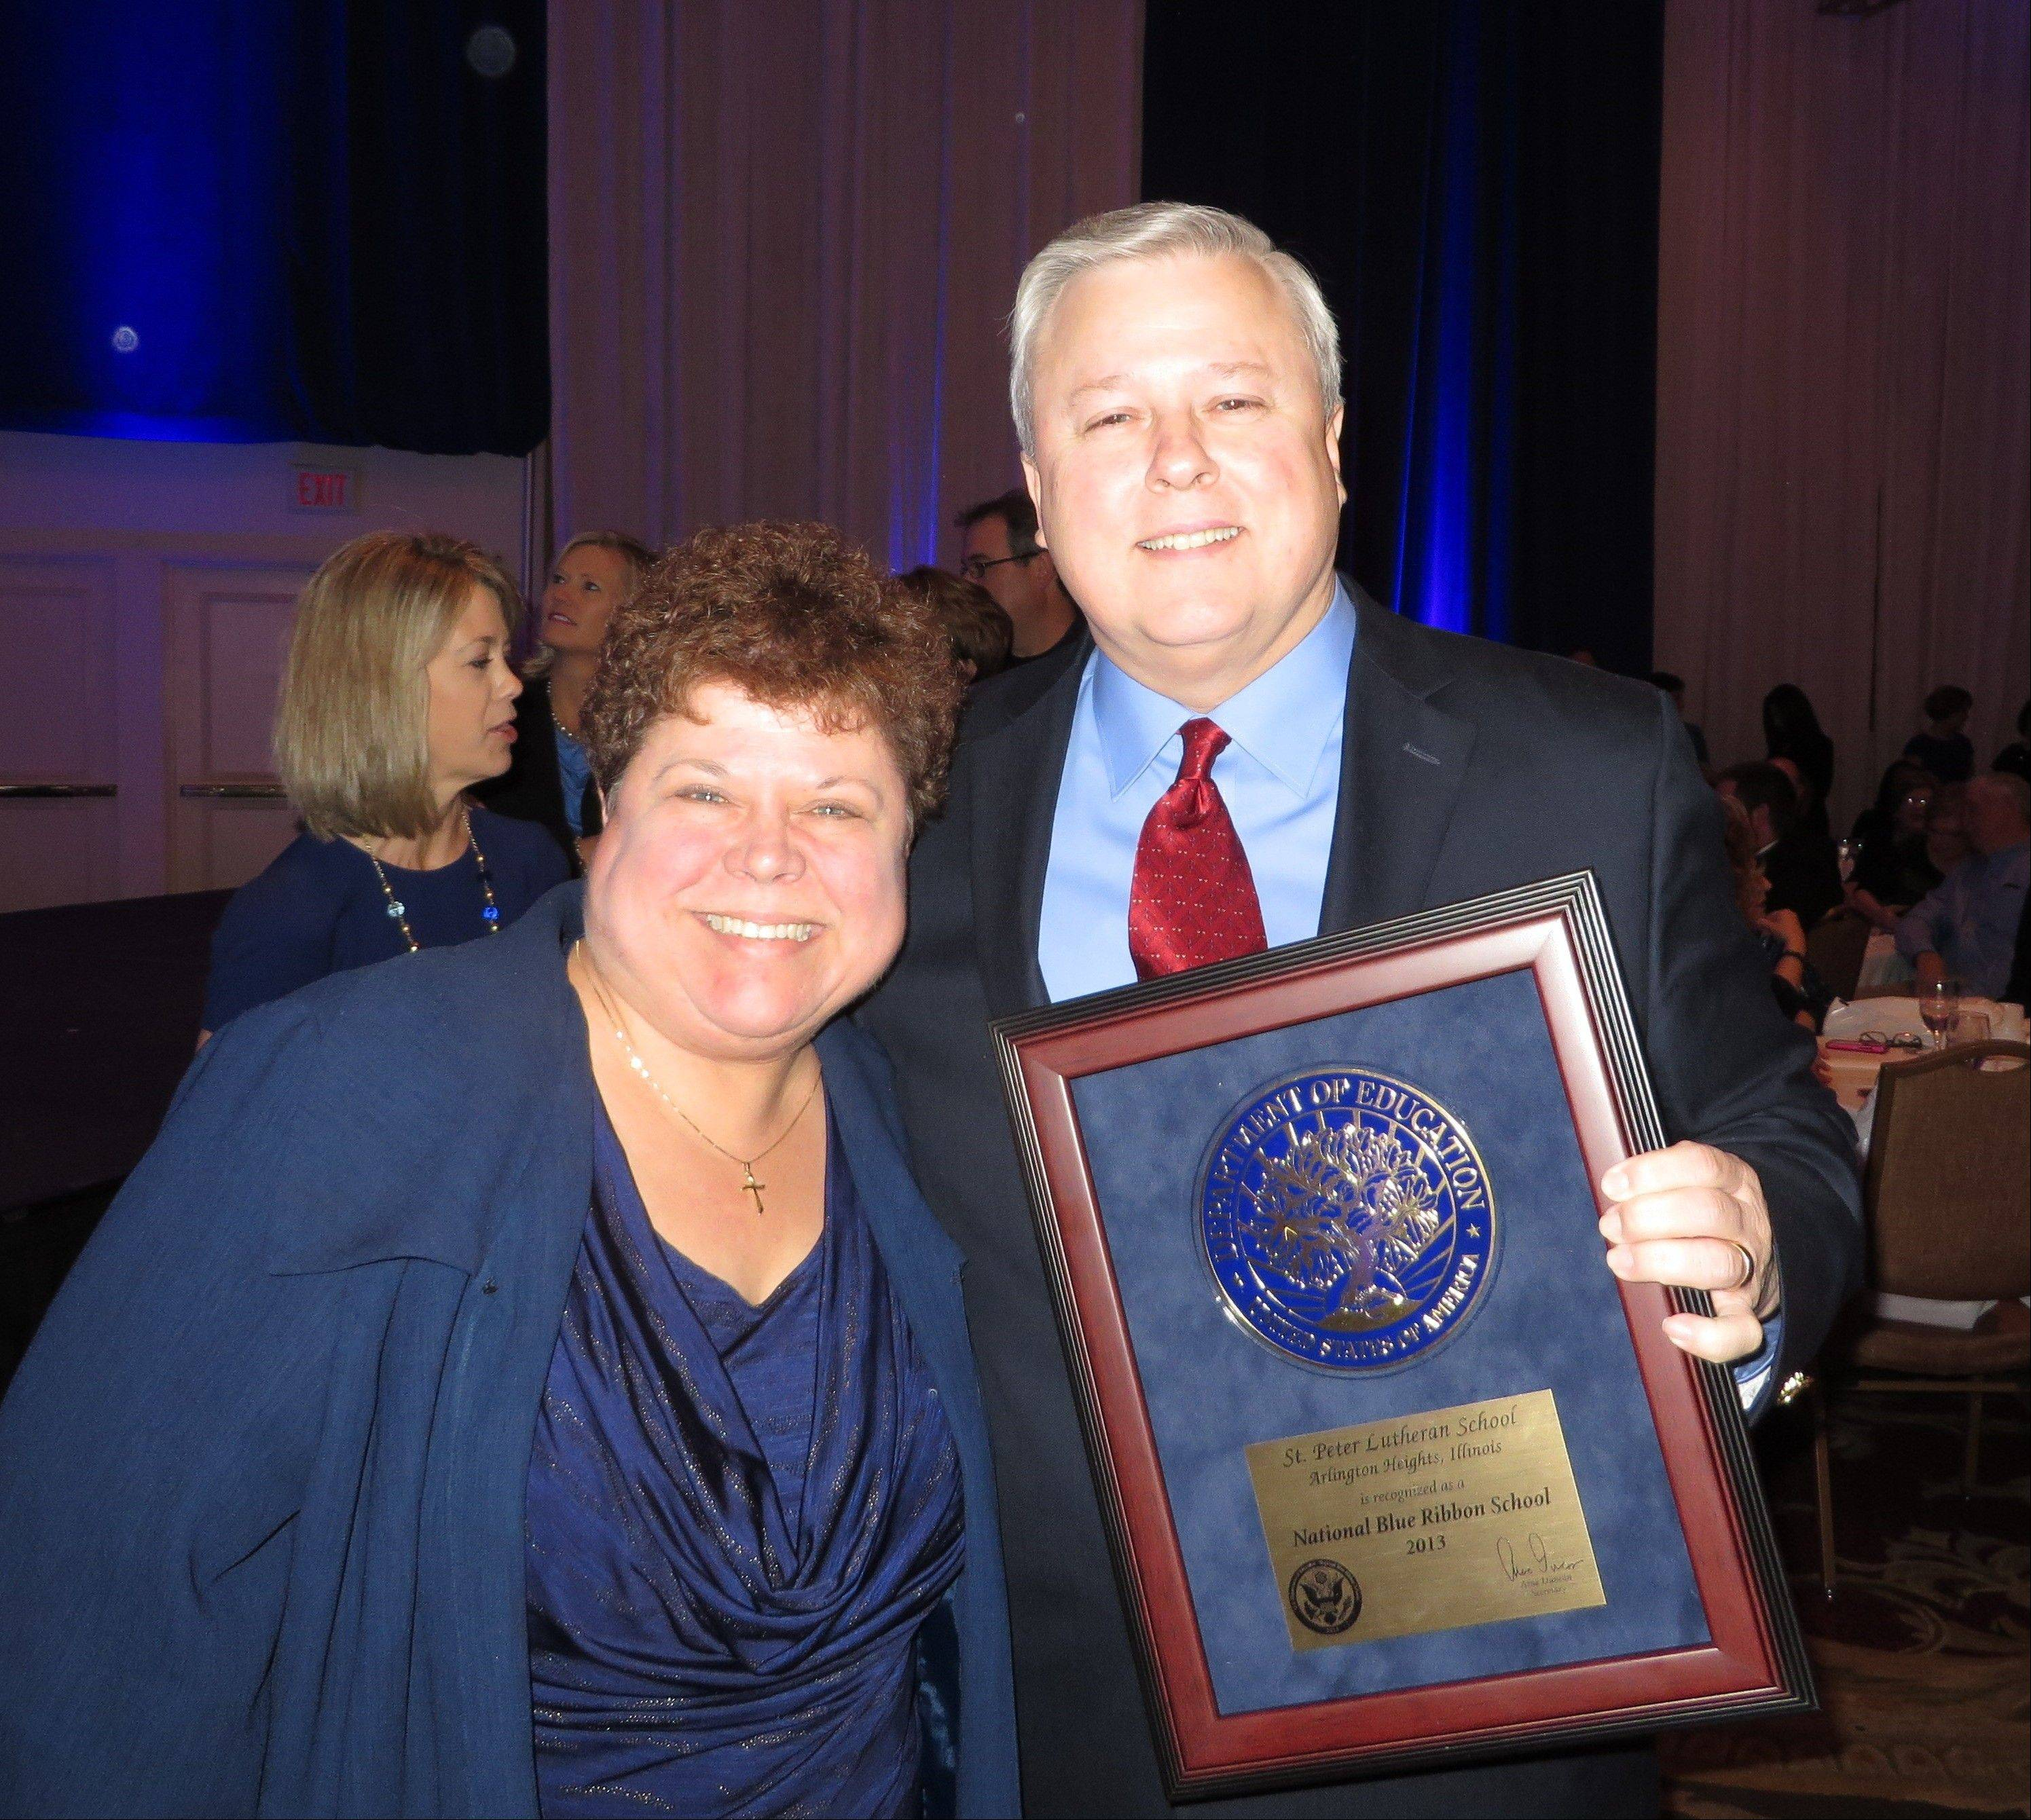 Julie Klopkie and Bruce Rudi, assistant principal and principal, respectively, of St. Peter Lutheran School in Arlington Heights, recently attended the award ceremony for this year's National Blue Ribbon schools. St. Peter was one of three Northwest Cook County schools to receive the honor.